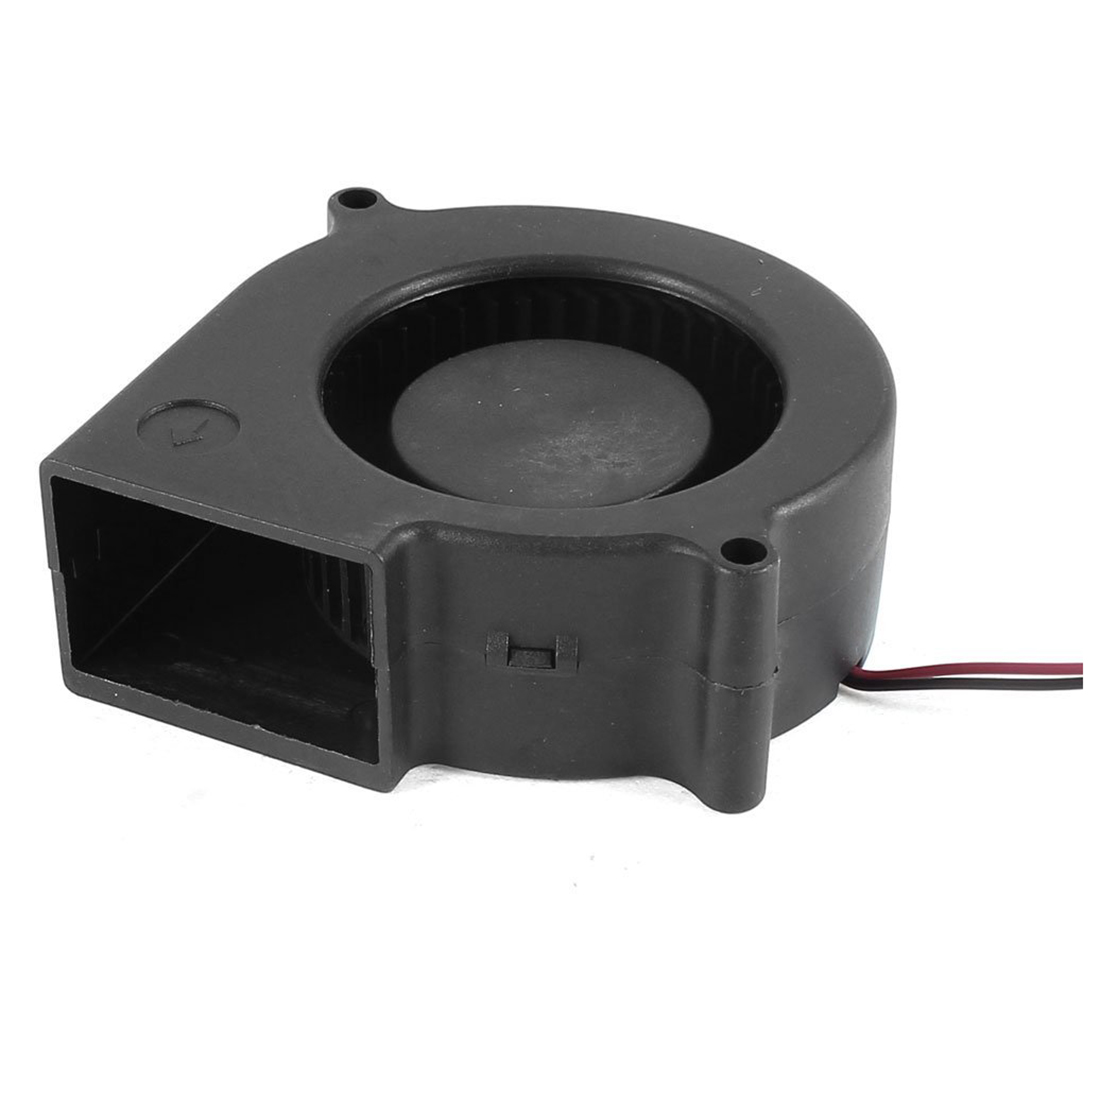 75mm x 30mm 2Pin DC 5V Brushless Blower Cooling Fan for Computer PC 75mmx30mm dc 12v 0 24a 2 pin computer pc sleeve bearing blower cooling fan 7530 h029